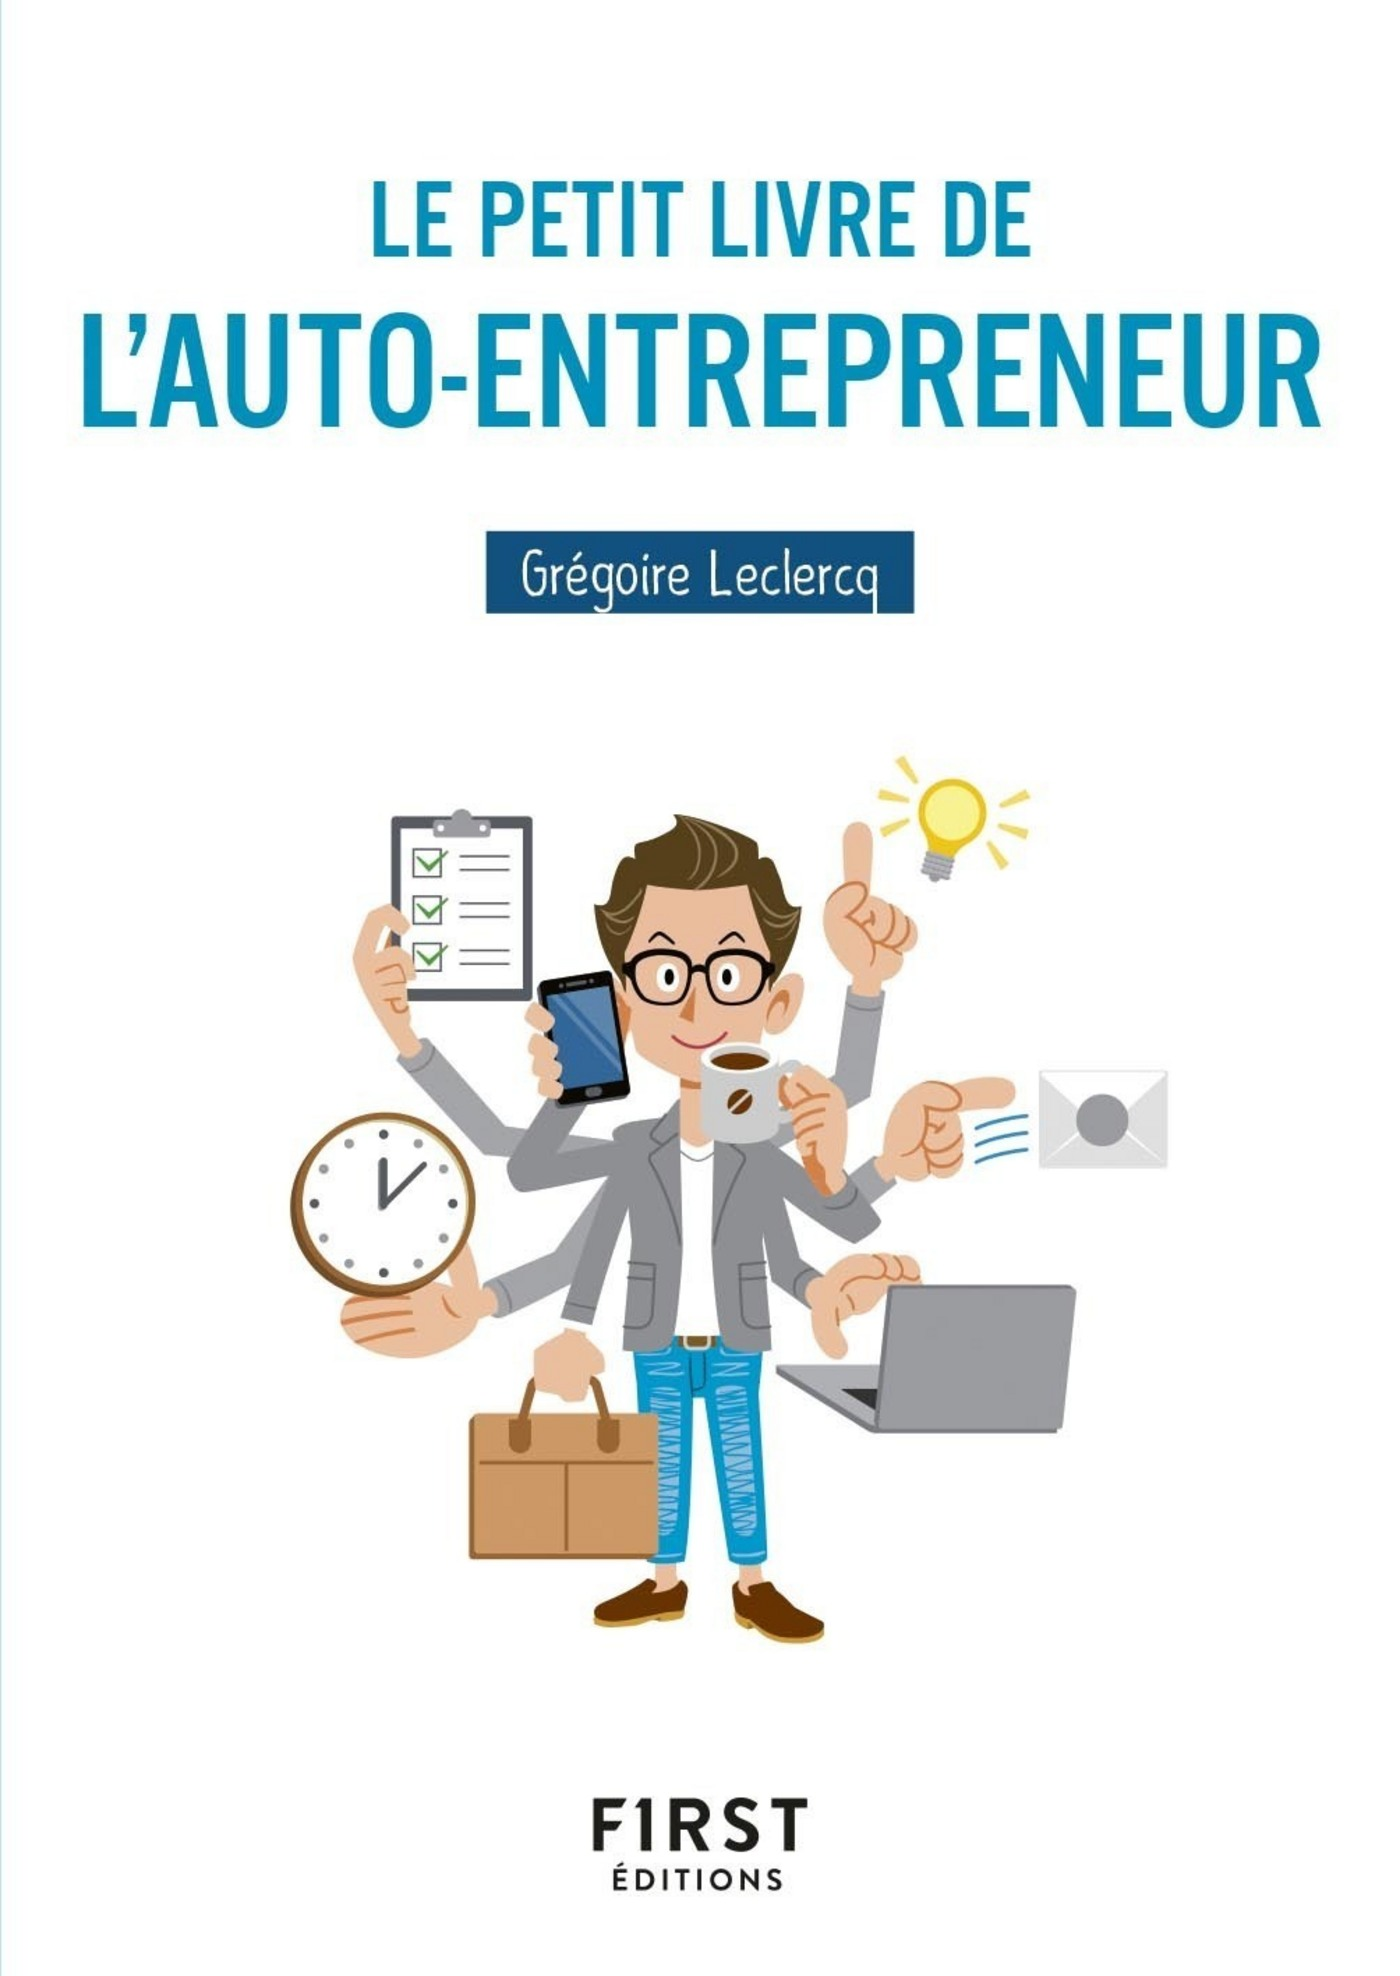 Le Petit Livre de l'auto-entrepreneur